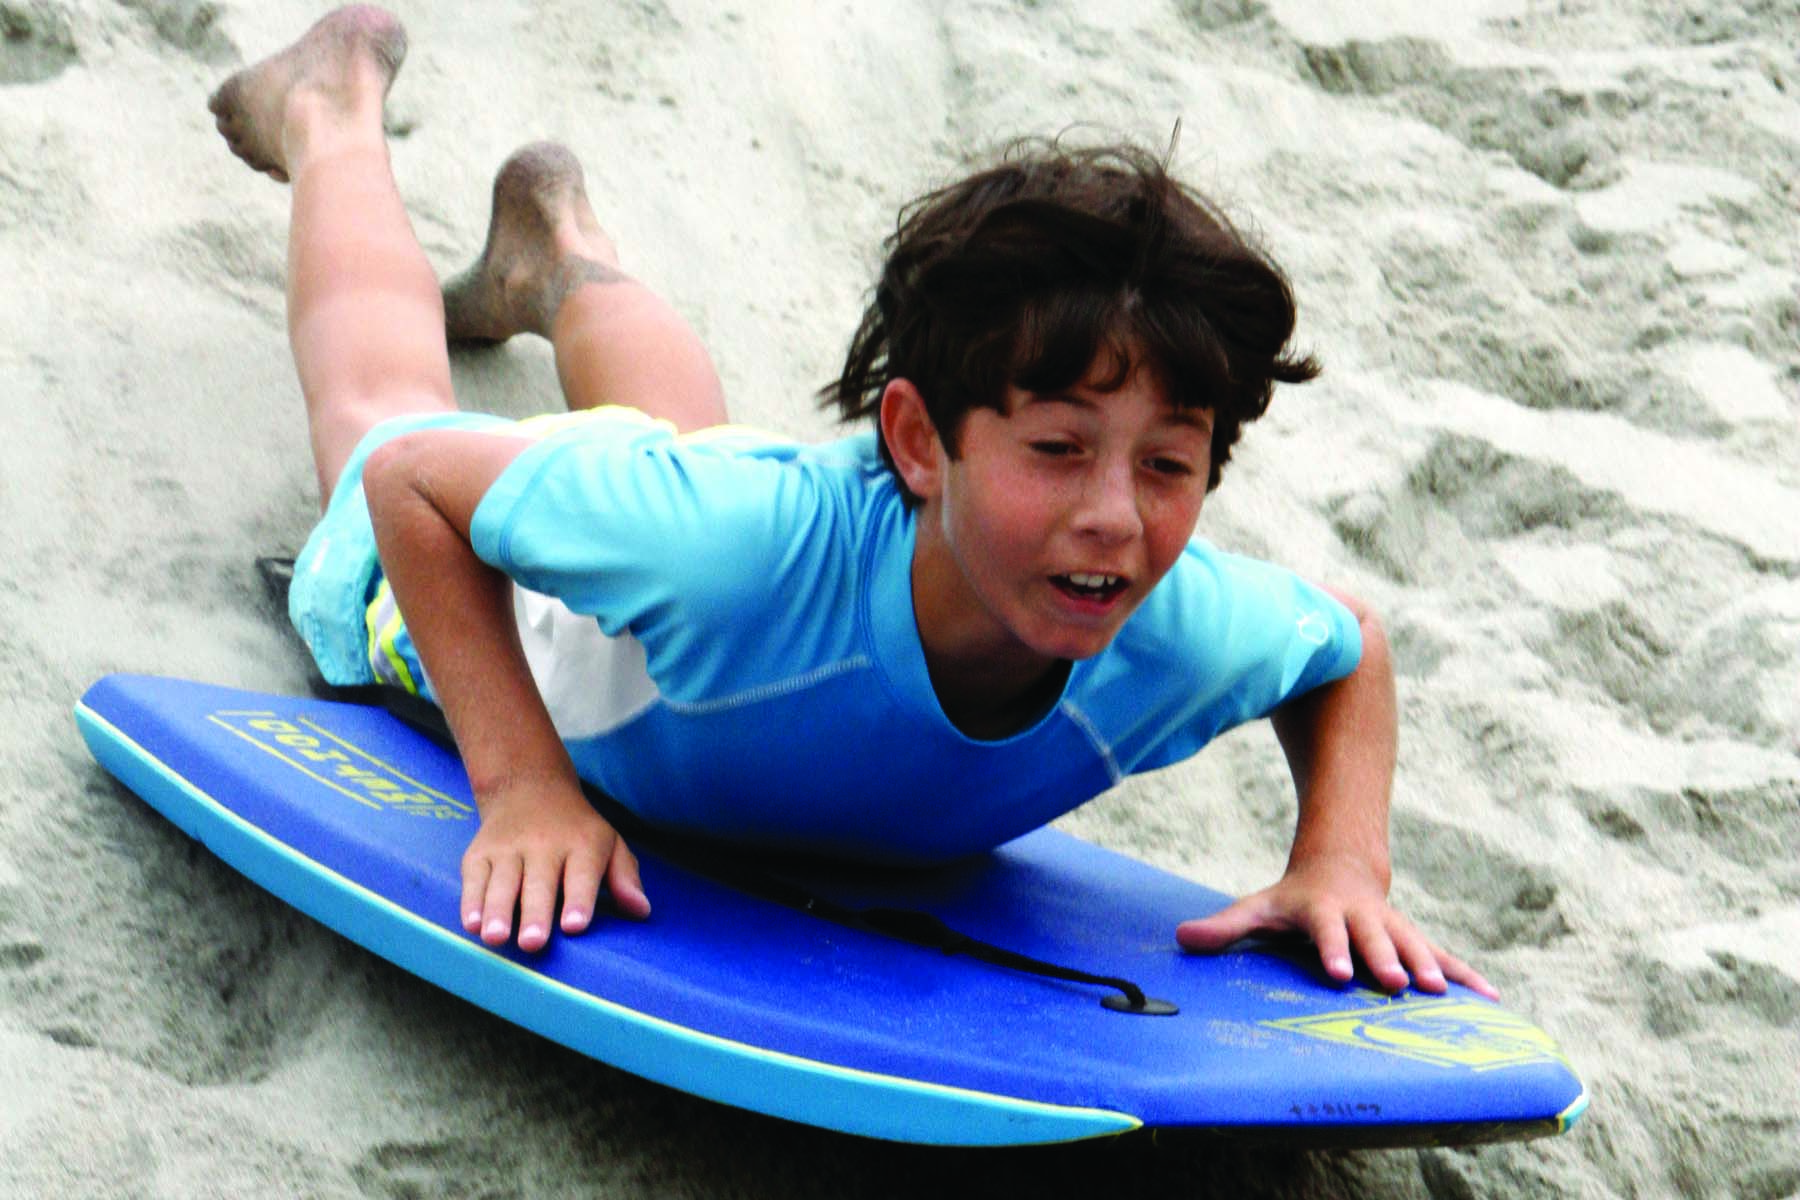 Connor Collets, 10, of Carlsbad, bodyboards down one of the sand dunes at Moonlight Beach. Photo by Pat Cubel